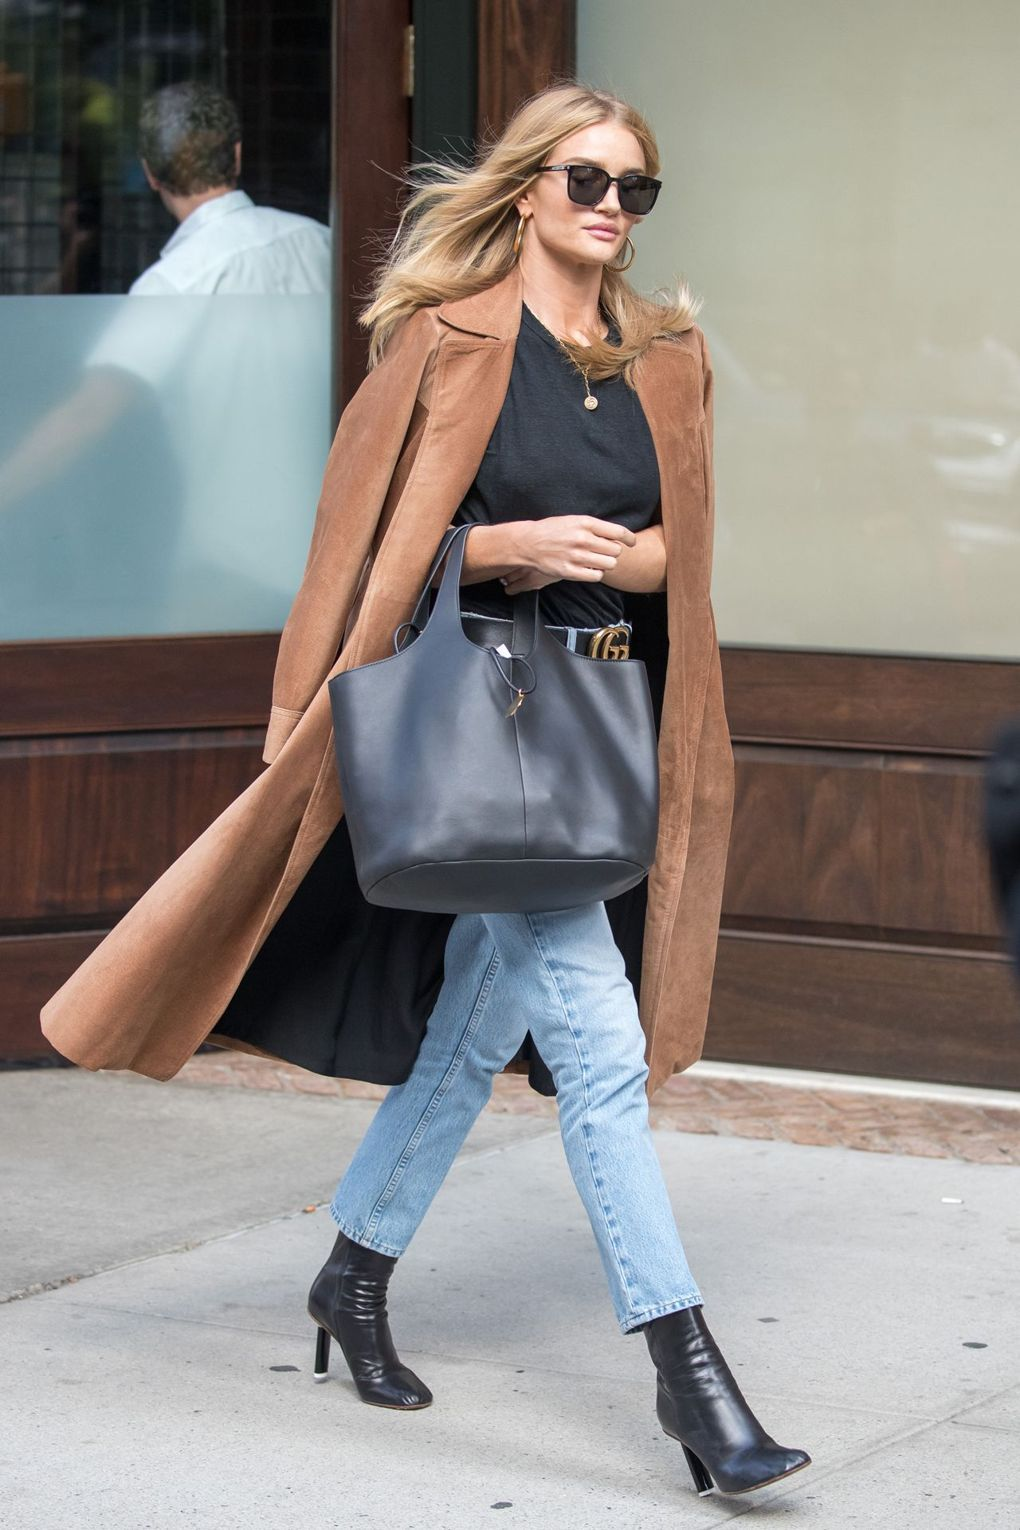 How to Style a Suede Coat for Fall – Rosie Huntington-Whiteley Model Style